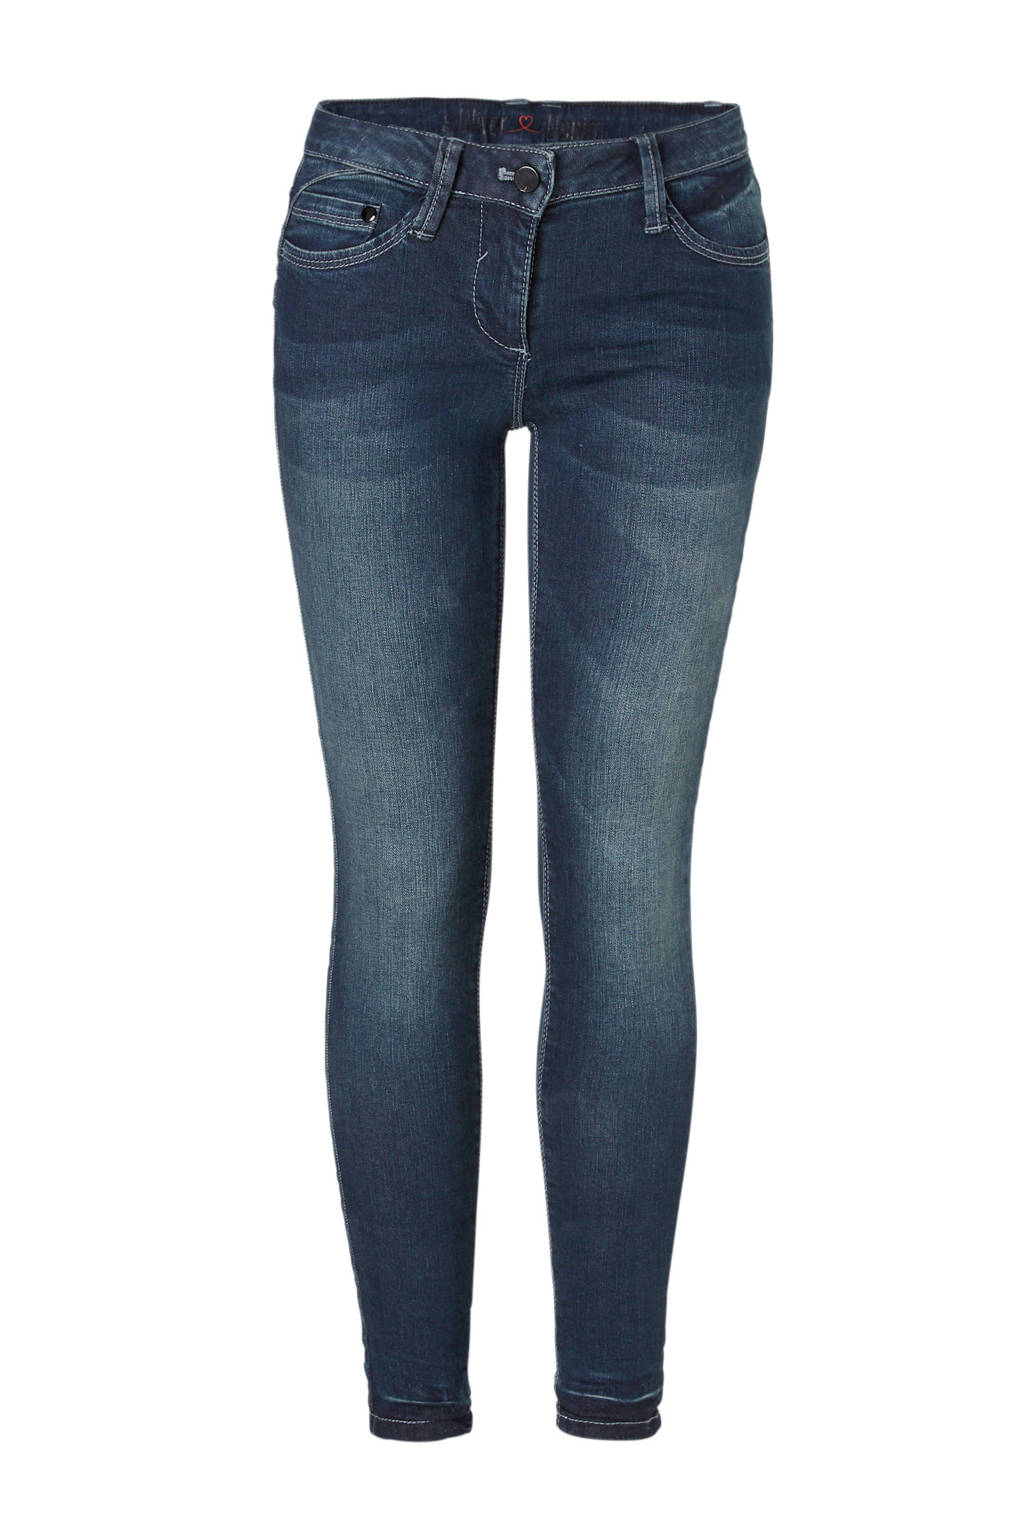 s.Oliver slim fit jeans dark denim, Dark denim